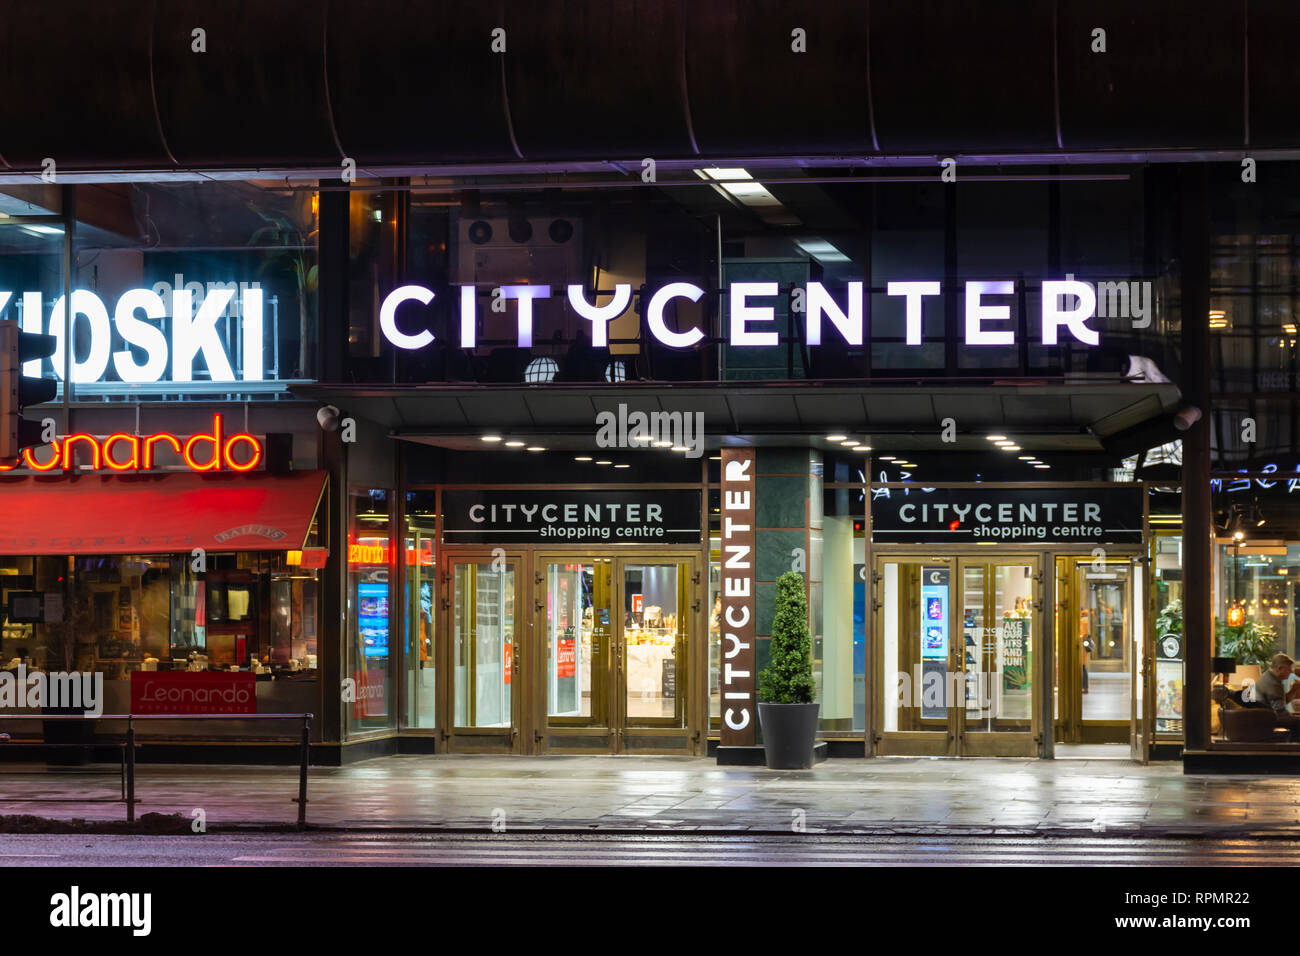 Citycenter Stock Photos & Citycenter Stock Images - Alamy